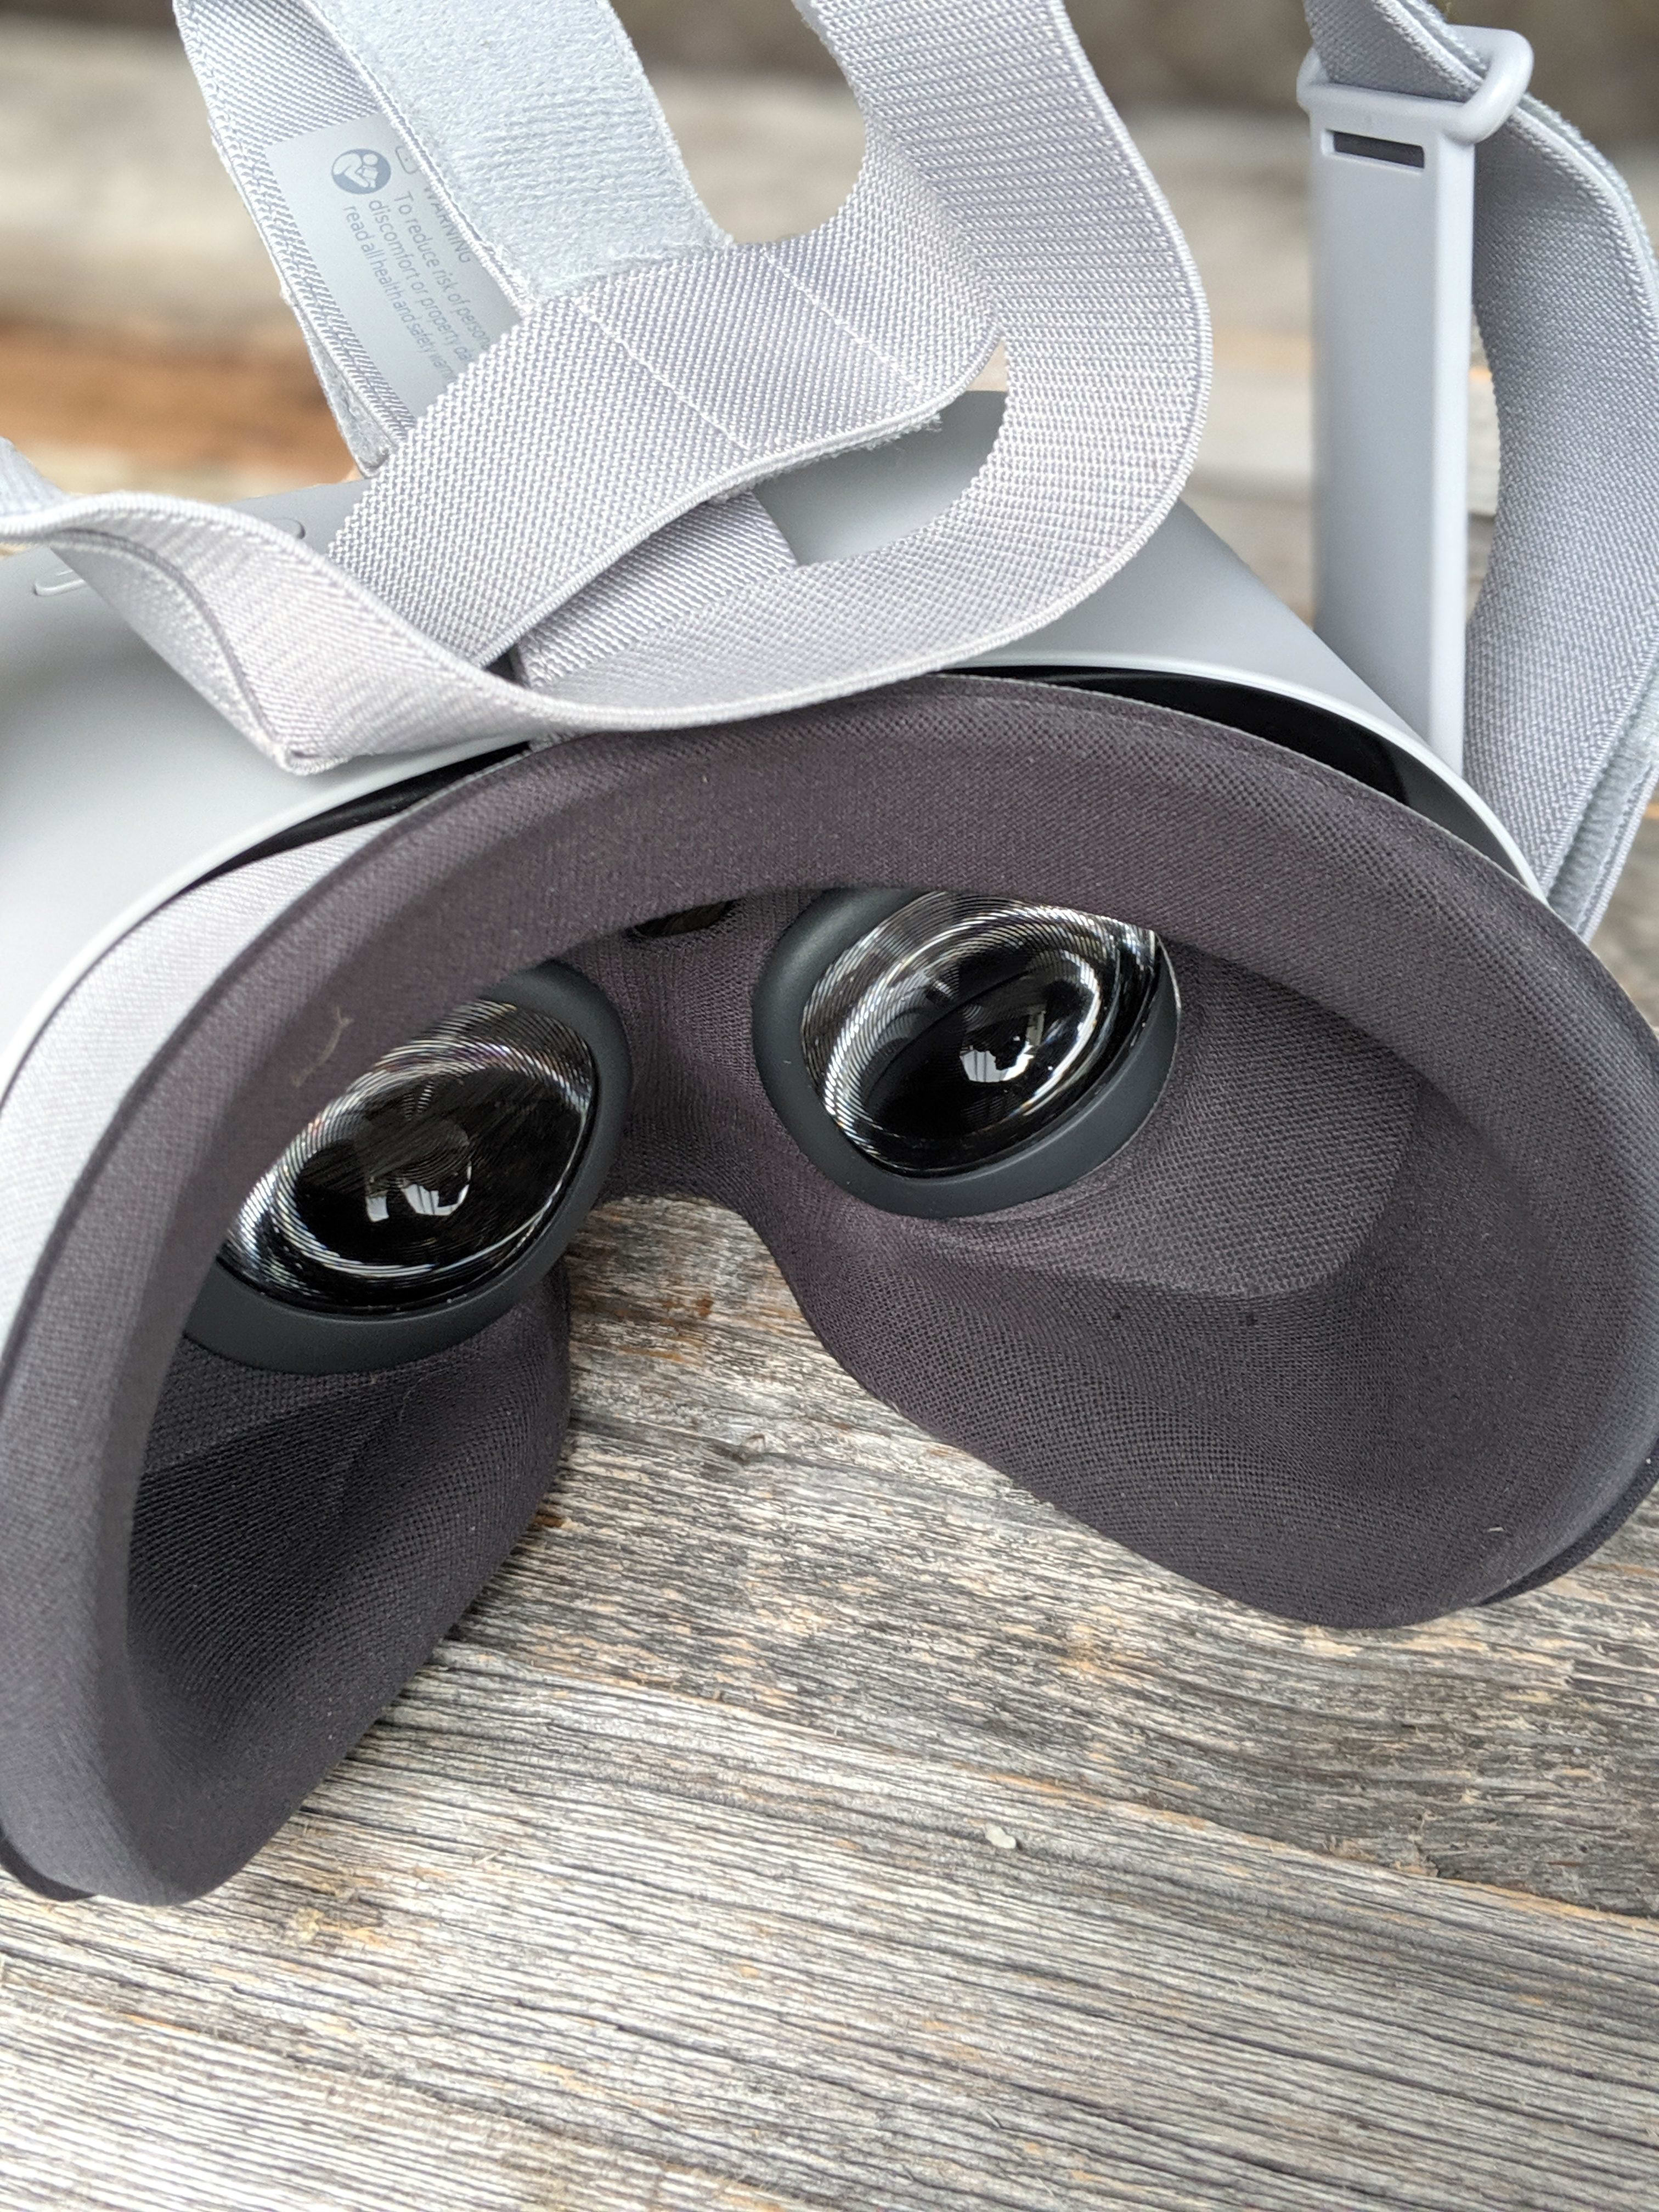 oculus Go review - The Headset Lenses